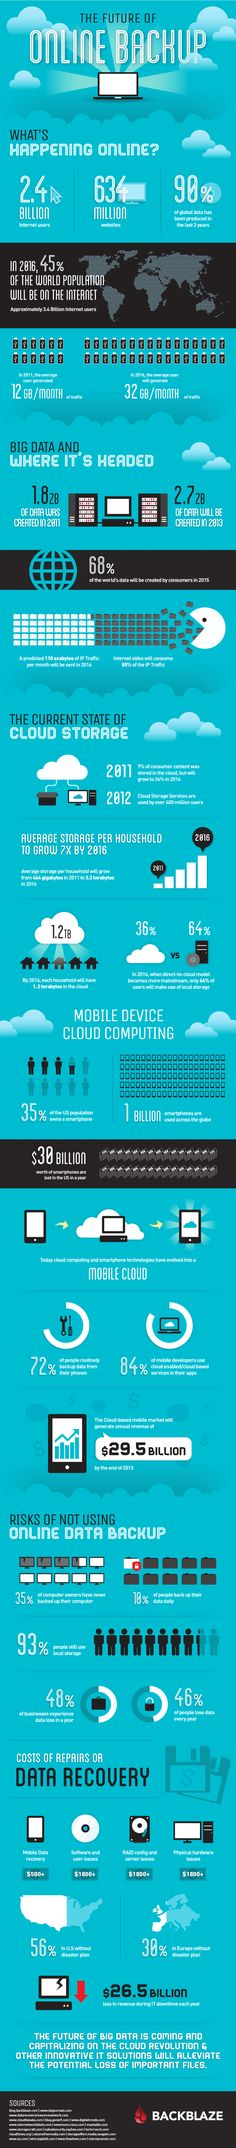 The big data stress test for it infrastructure #infographic